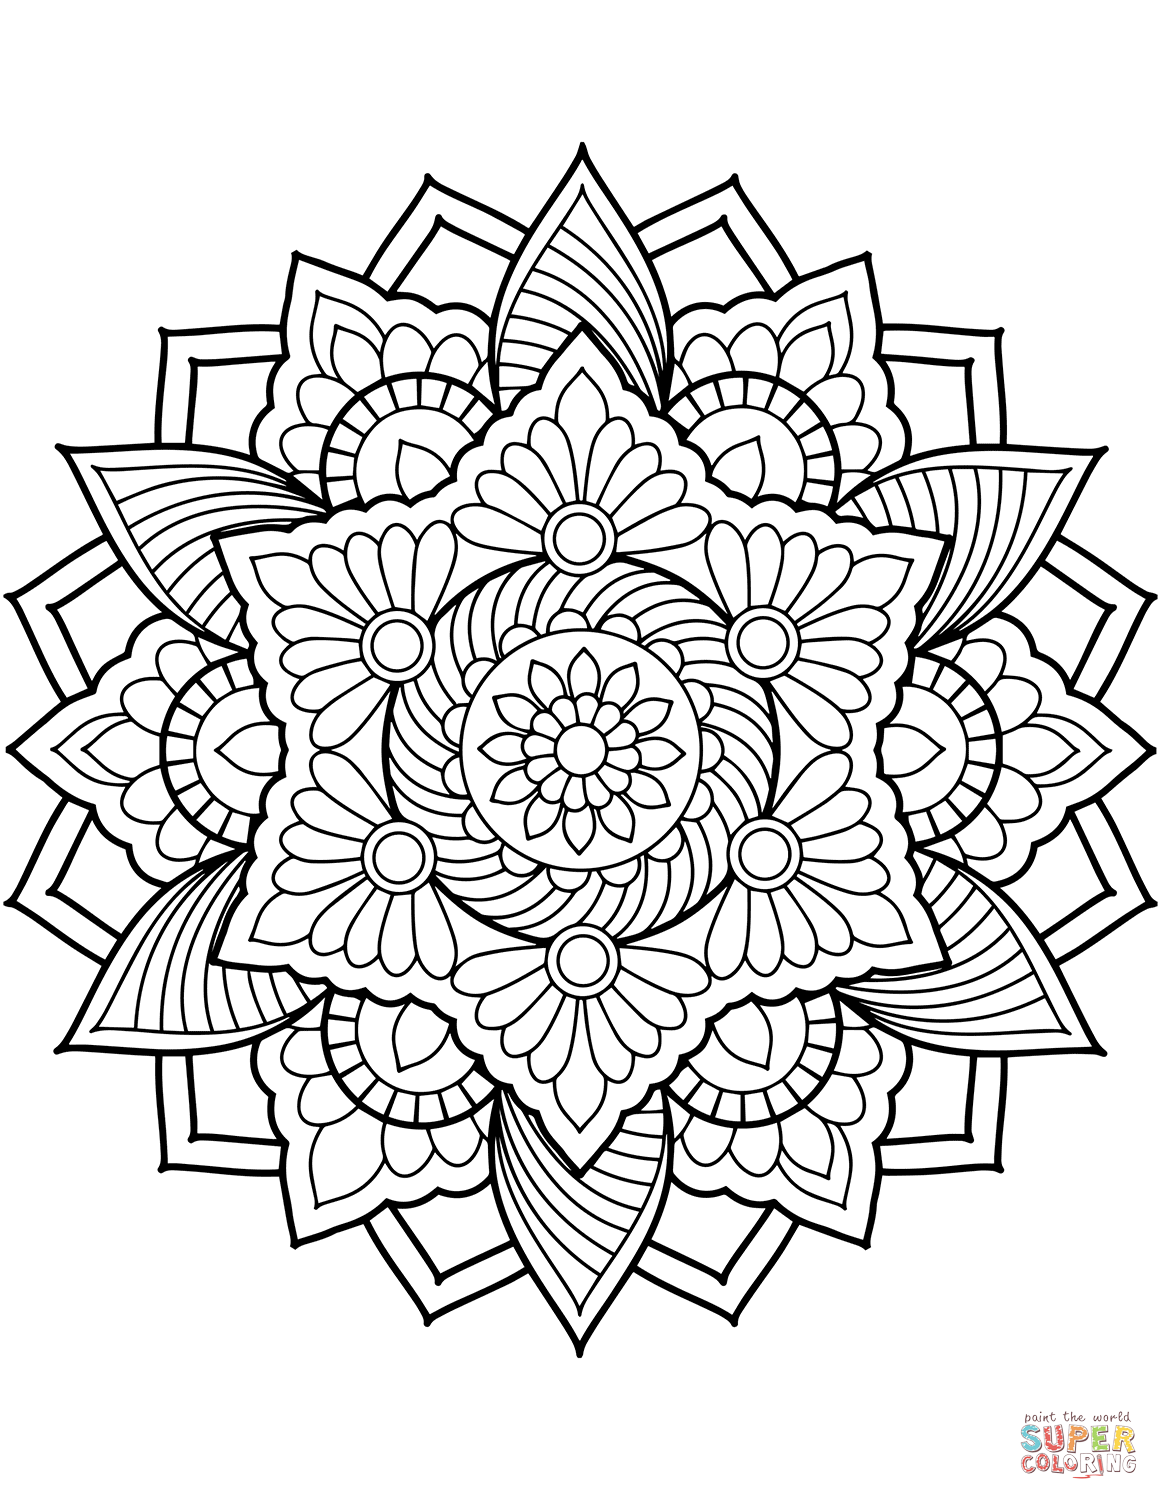 Flower Mandala Coloring Page From Floral Mandalas Category Select